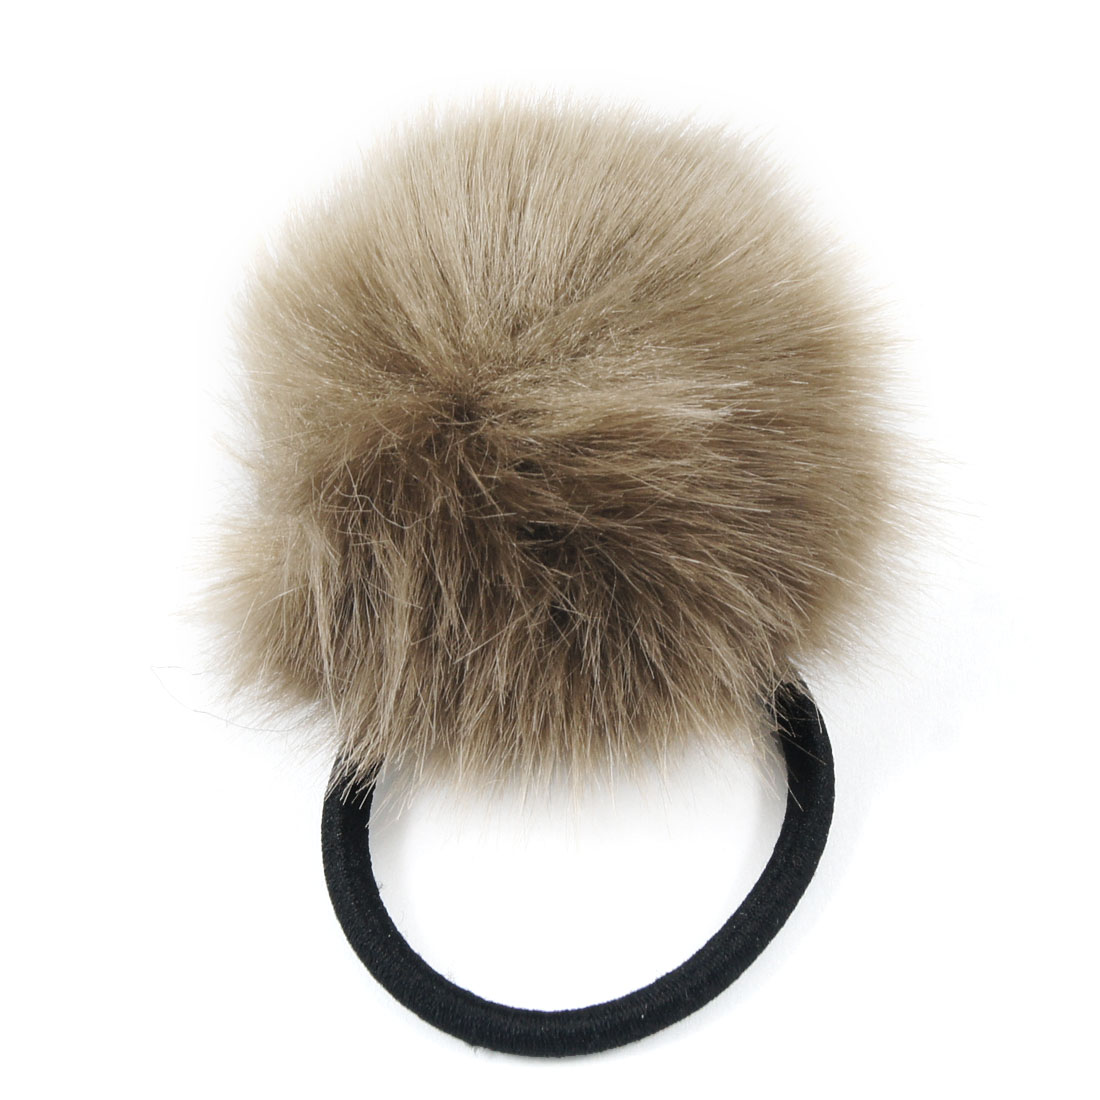 Coffee Color Plush Ball Decor Stretch Band Hair Tie Ponytail Holder for Lady